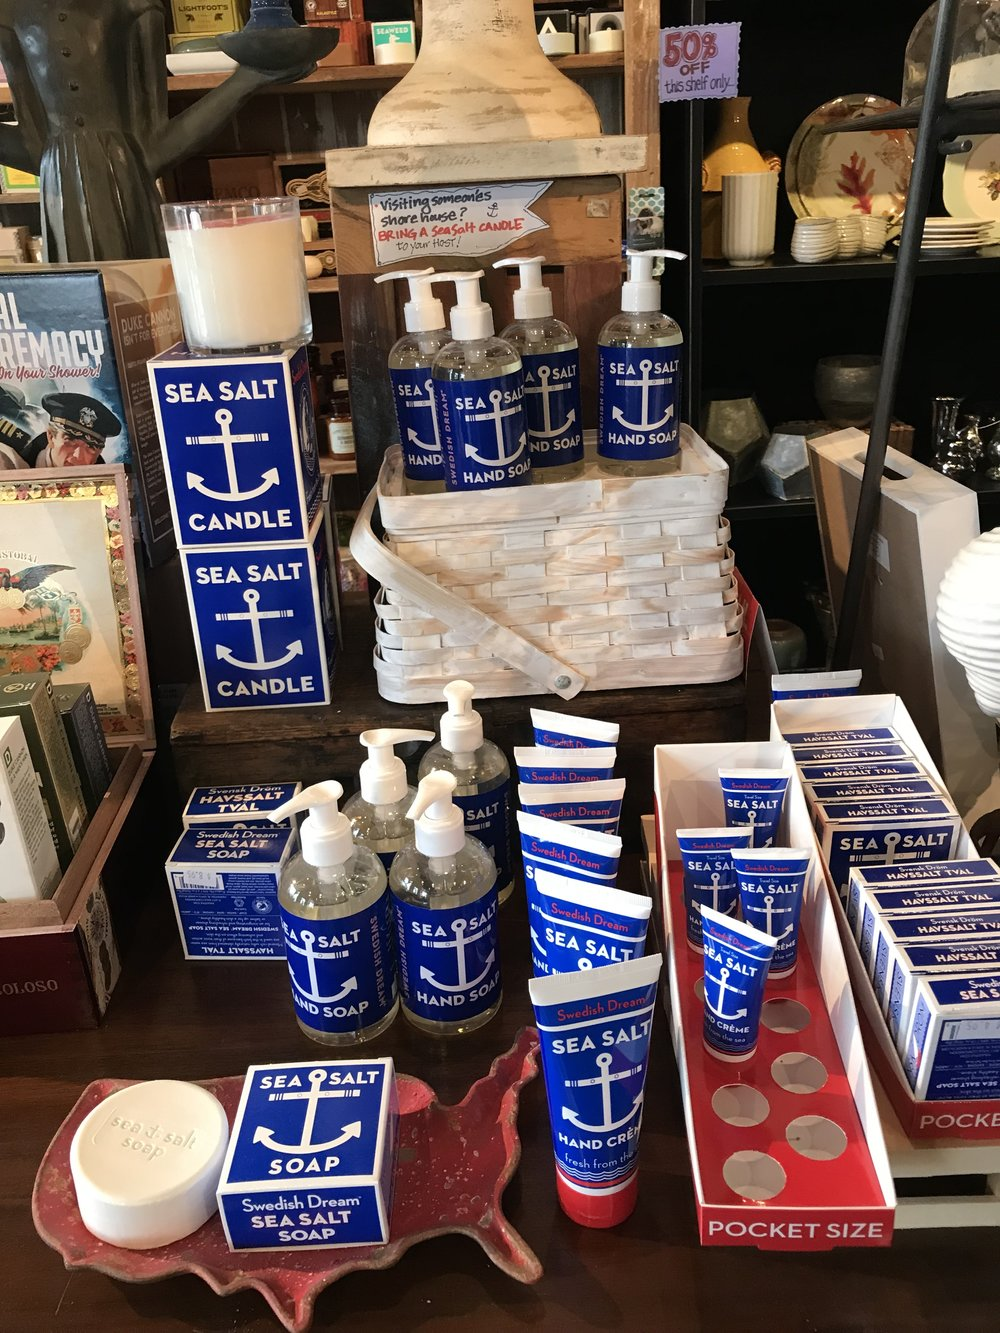 "Kala's ""Swedish Dreams Sea Salt"" Soaps & Lotions"